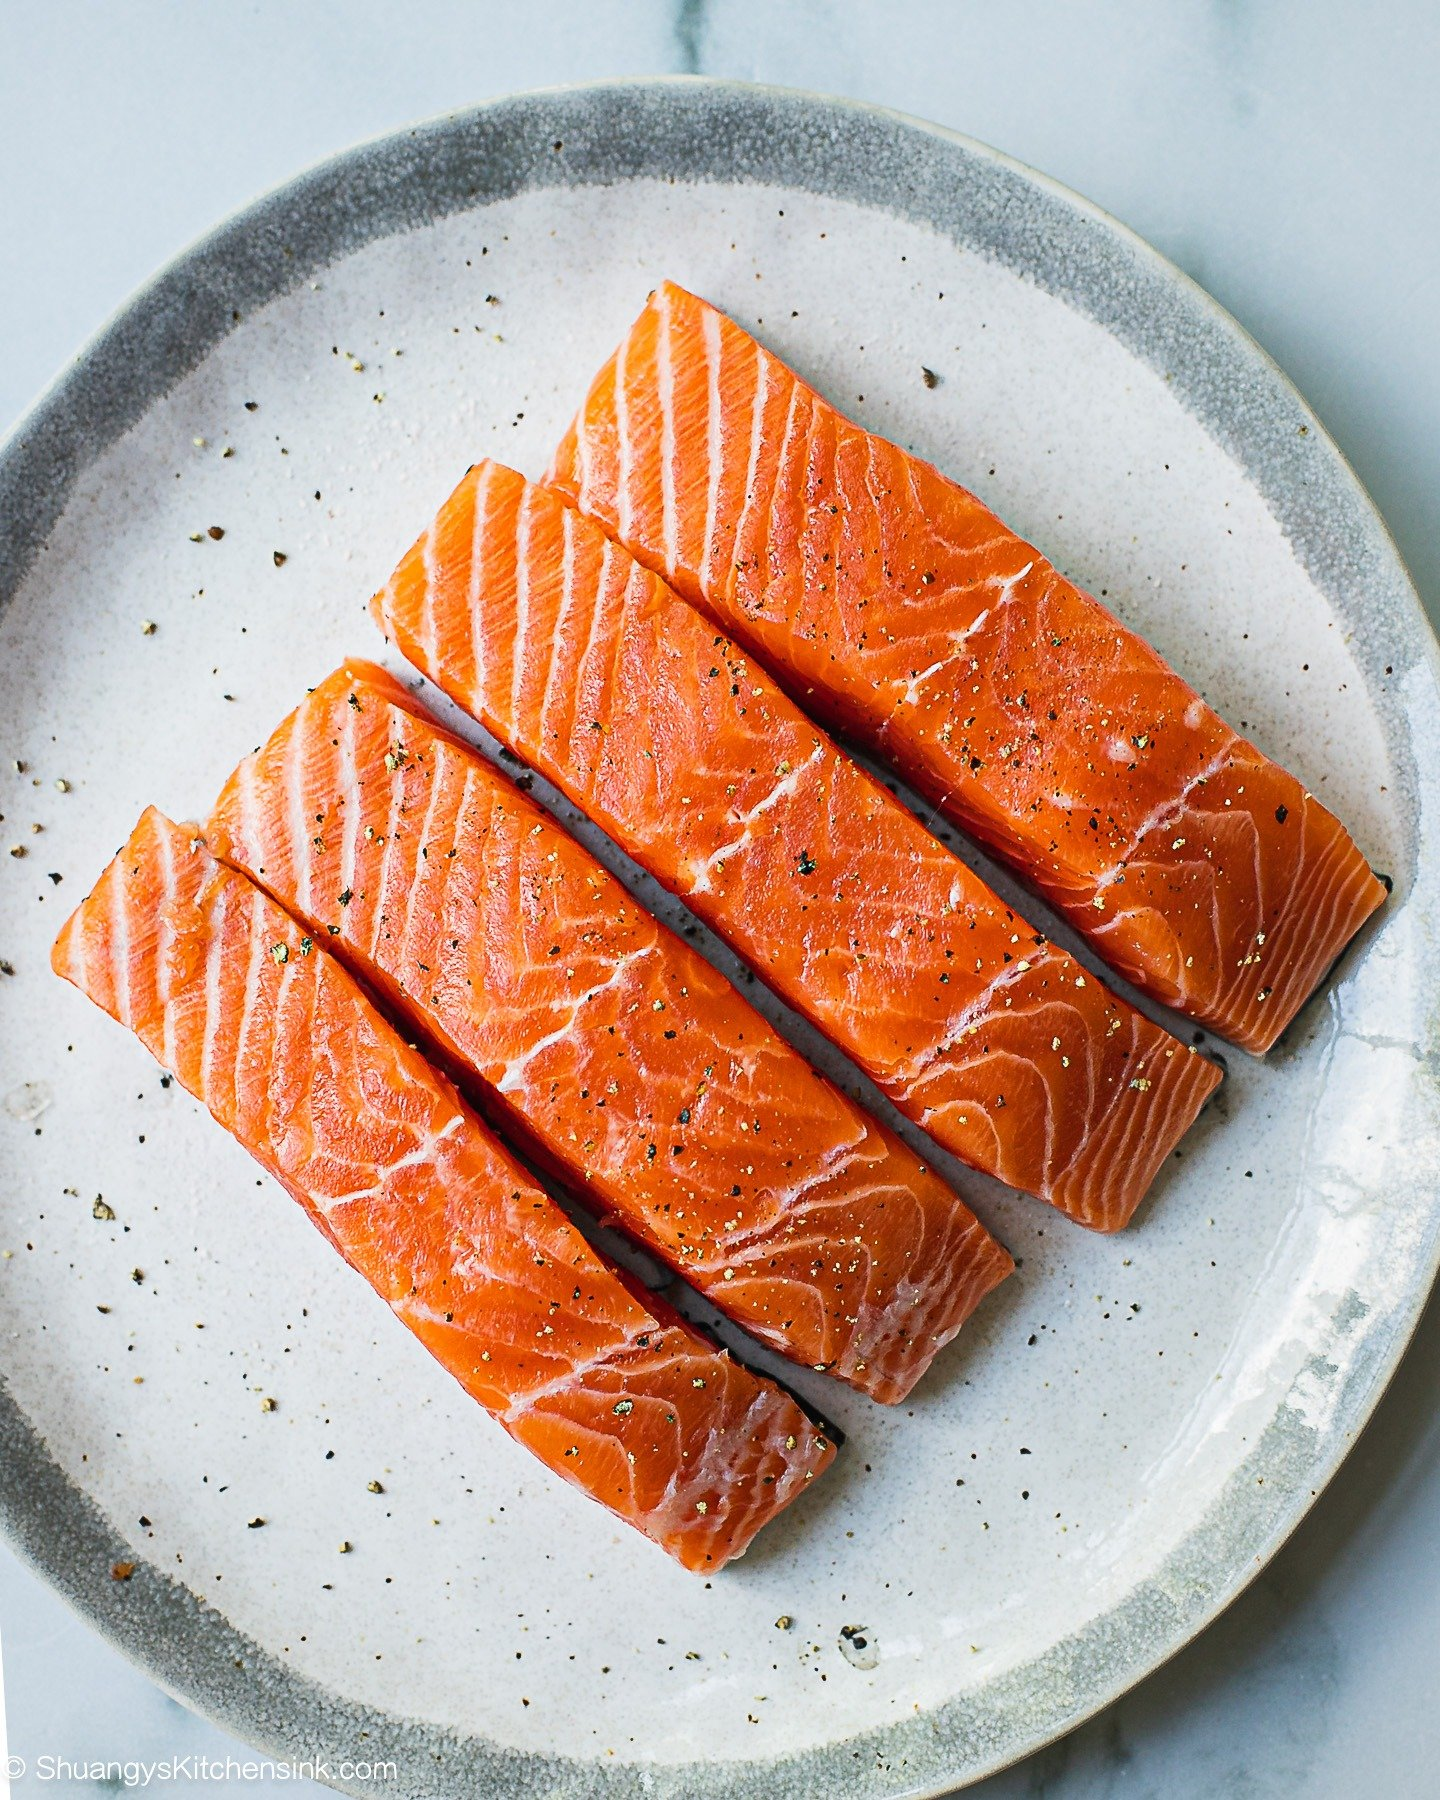 A plate of salmon seasoned recipe to be marinated.